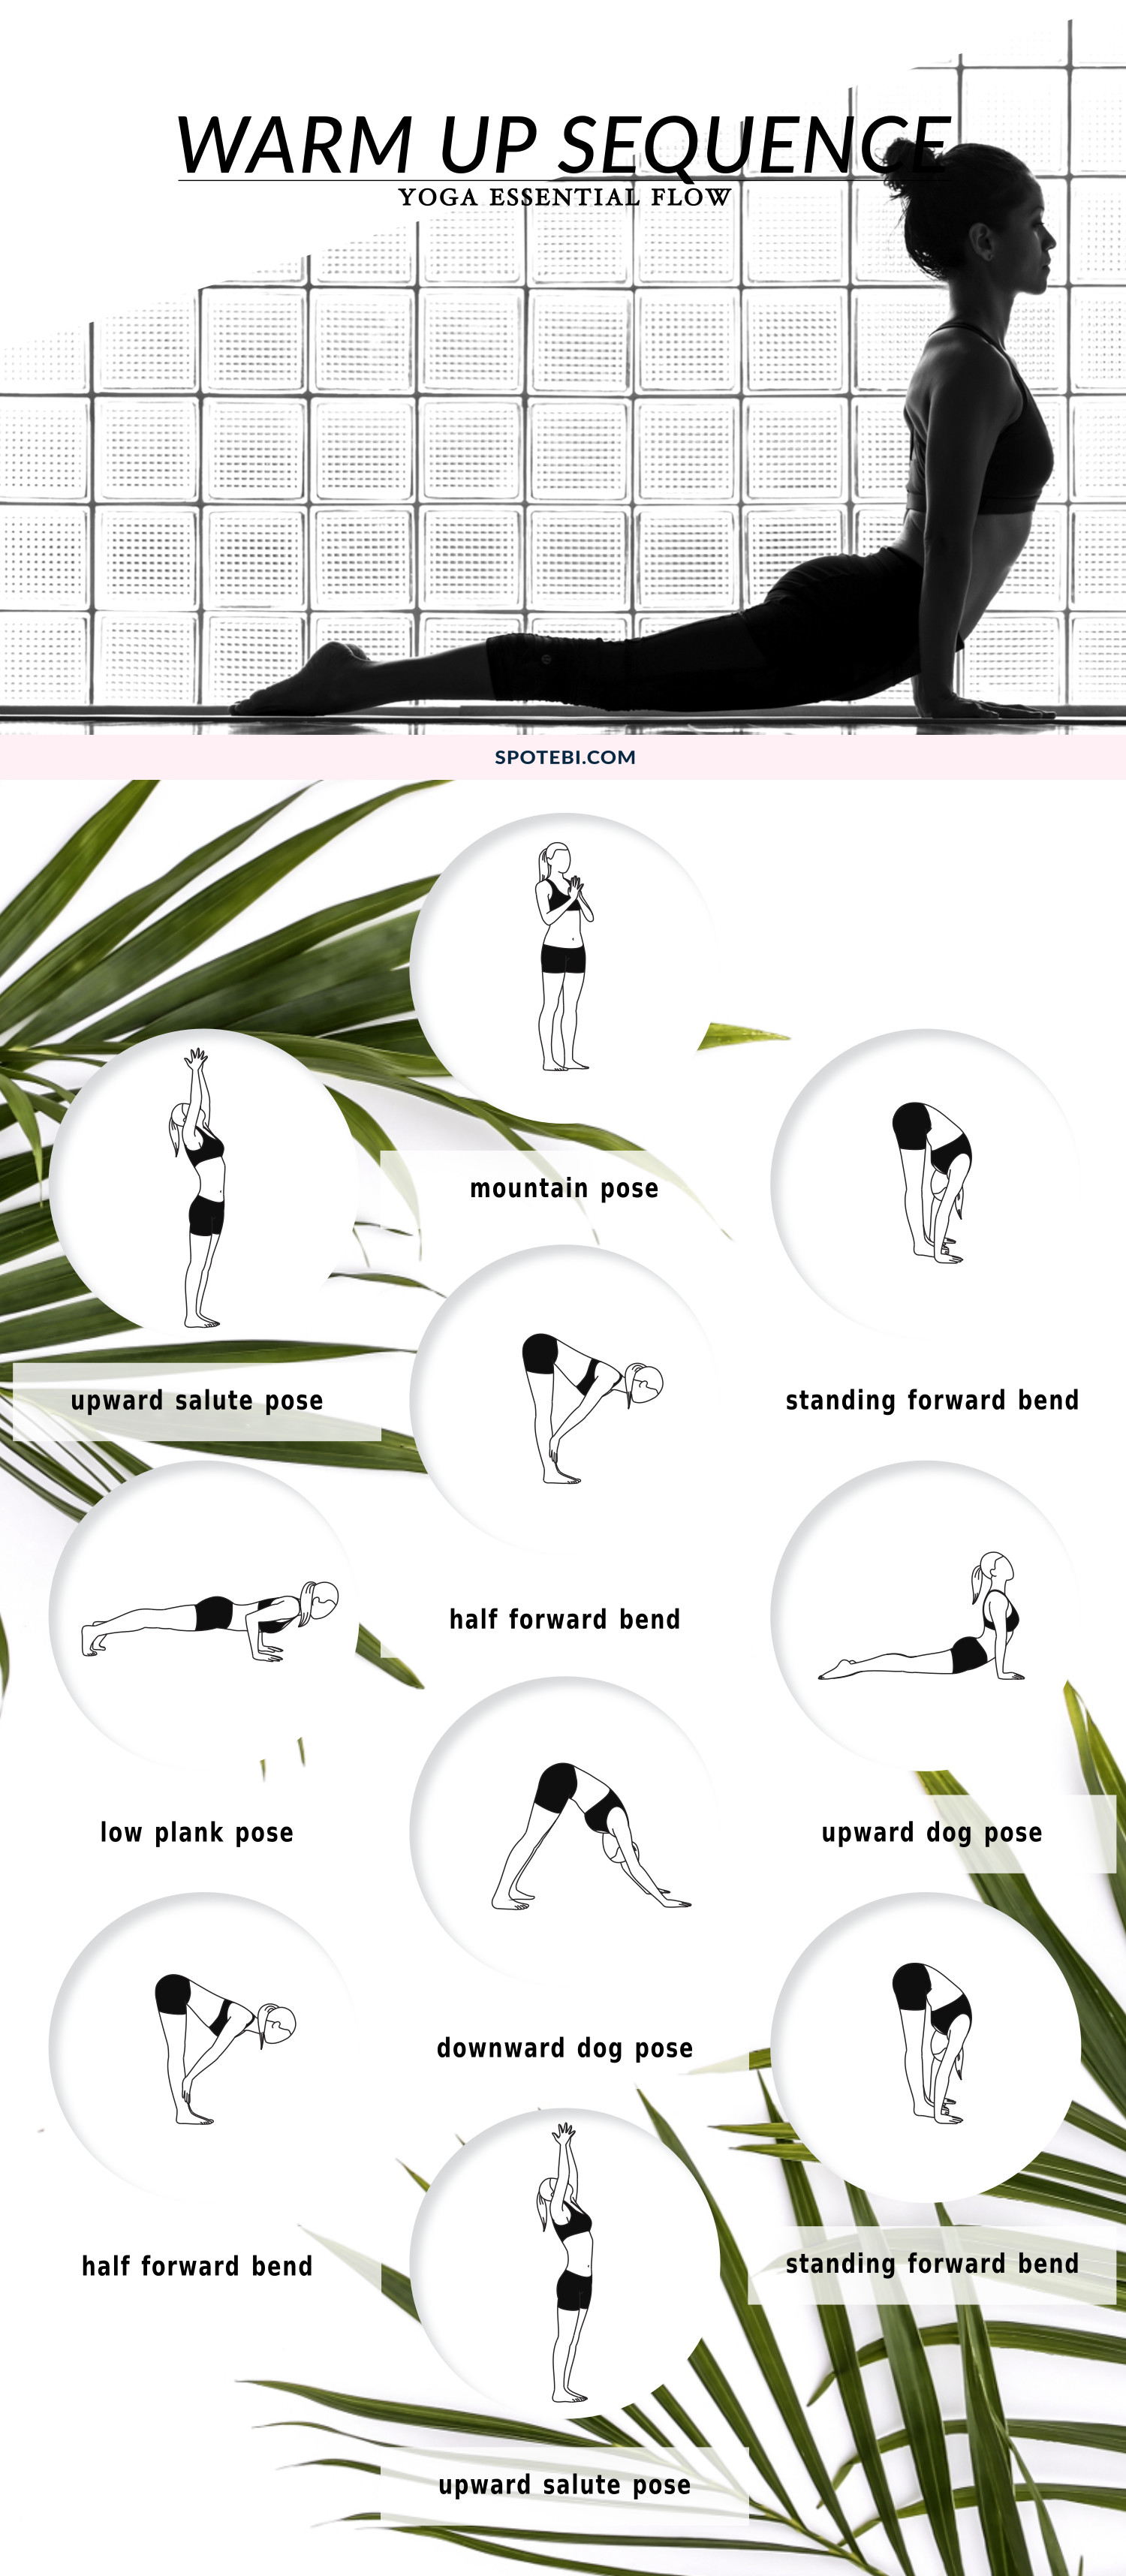 Yoga essential flow warm up sequence awaken the body and prepare for a workout with this yoga warm up flow repeat geenschuldenfo Choice Image